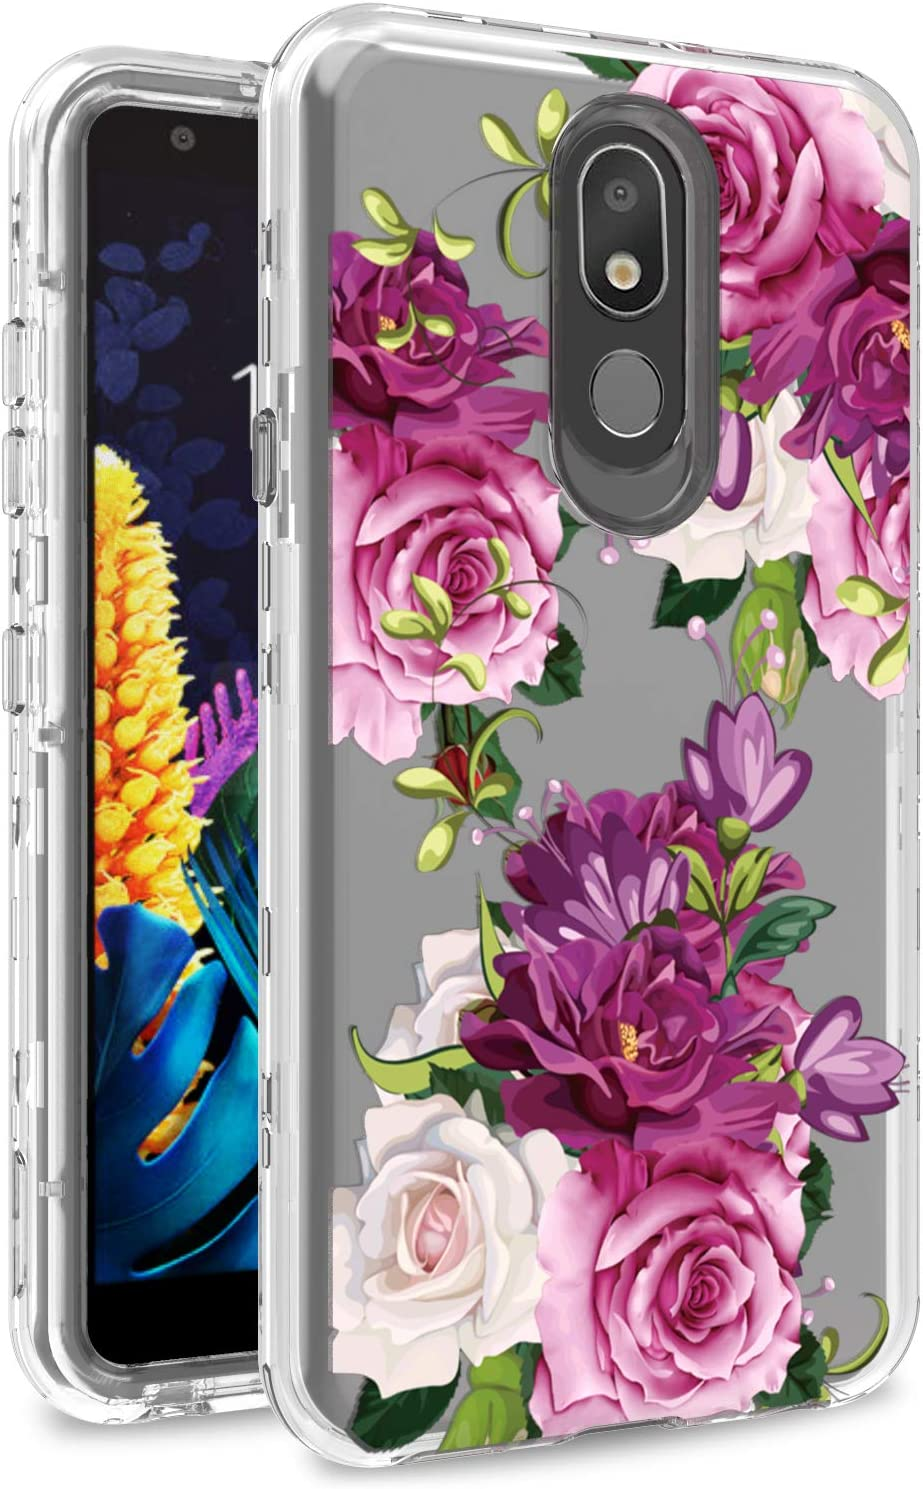 AMPURSQ Case for LG Aristo 4+ Plus/LG Neon Plus/LG Journey LTE L322DL/LG Escape Plus X320/LG Arena 2/LG Tribute Royal/LG K30 2019, TPU Bumper and PC Hard Clear Protective Armor Cover